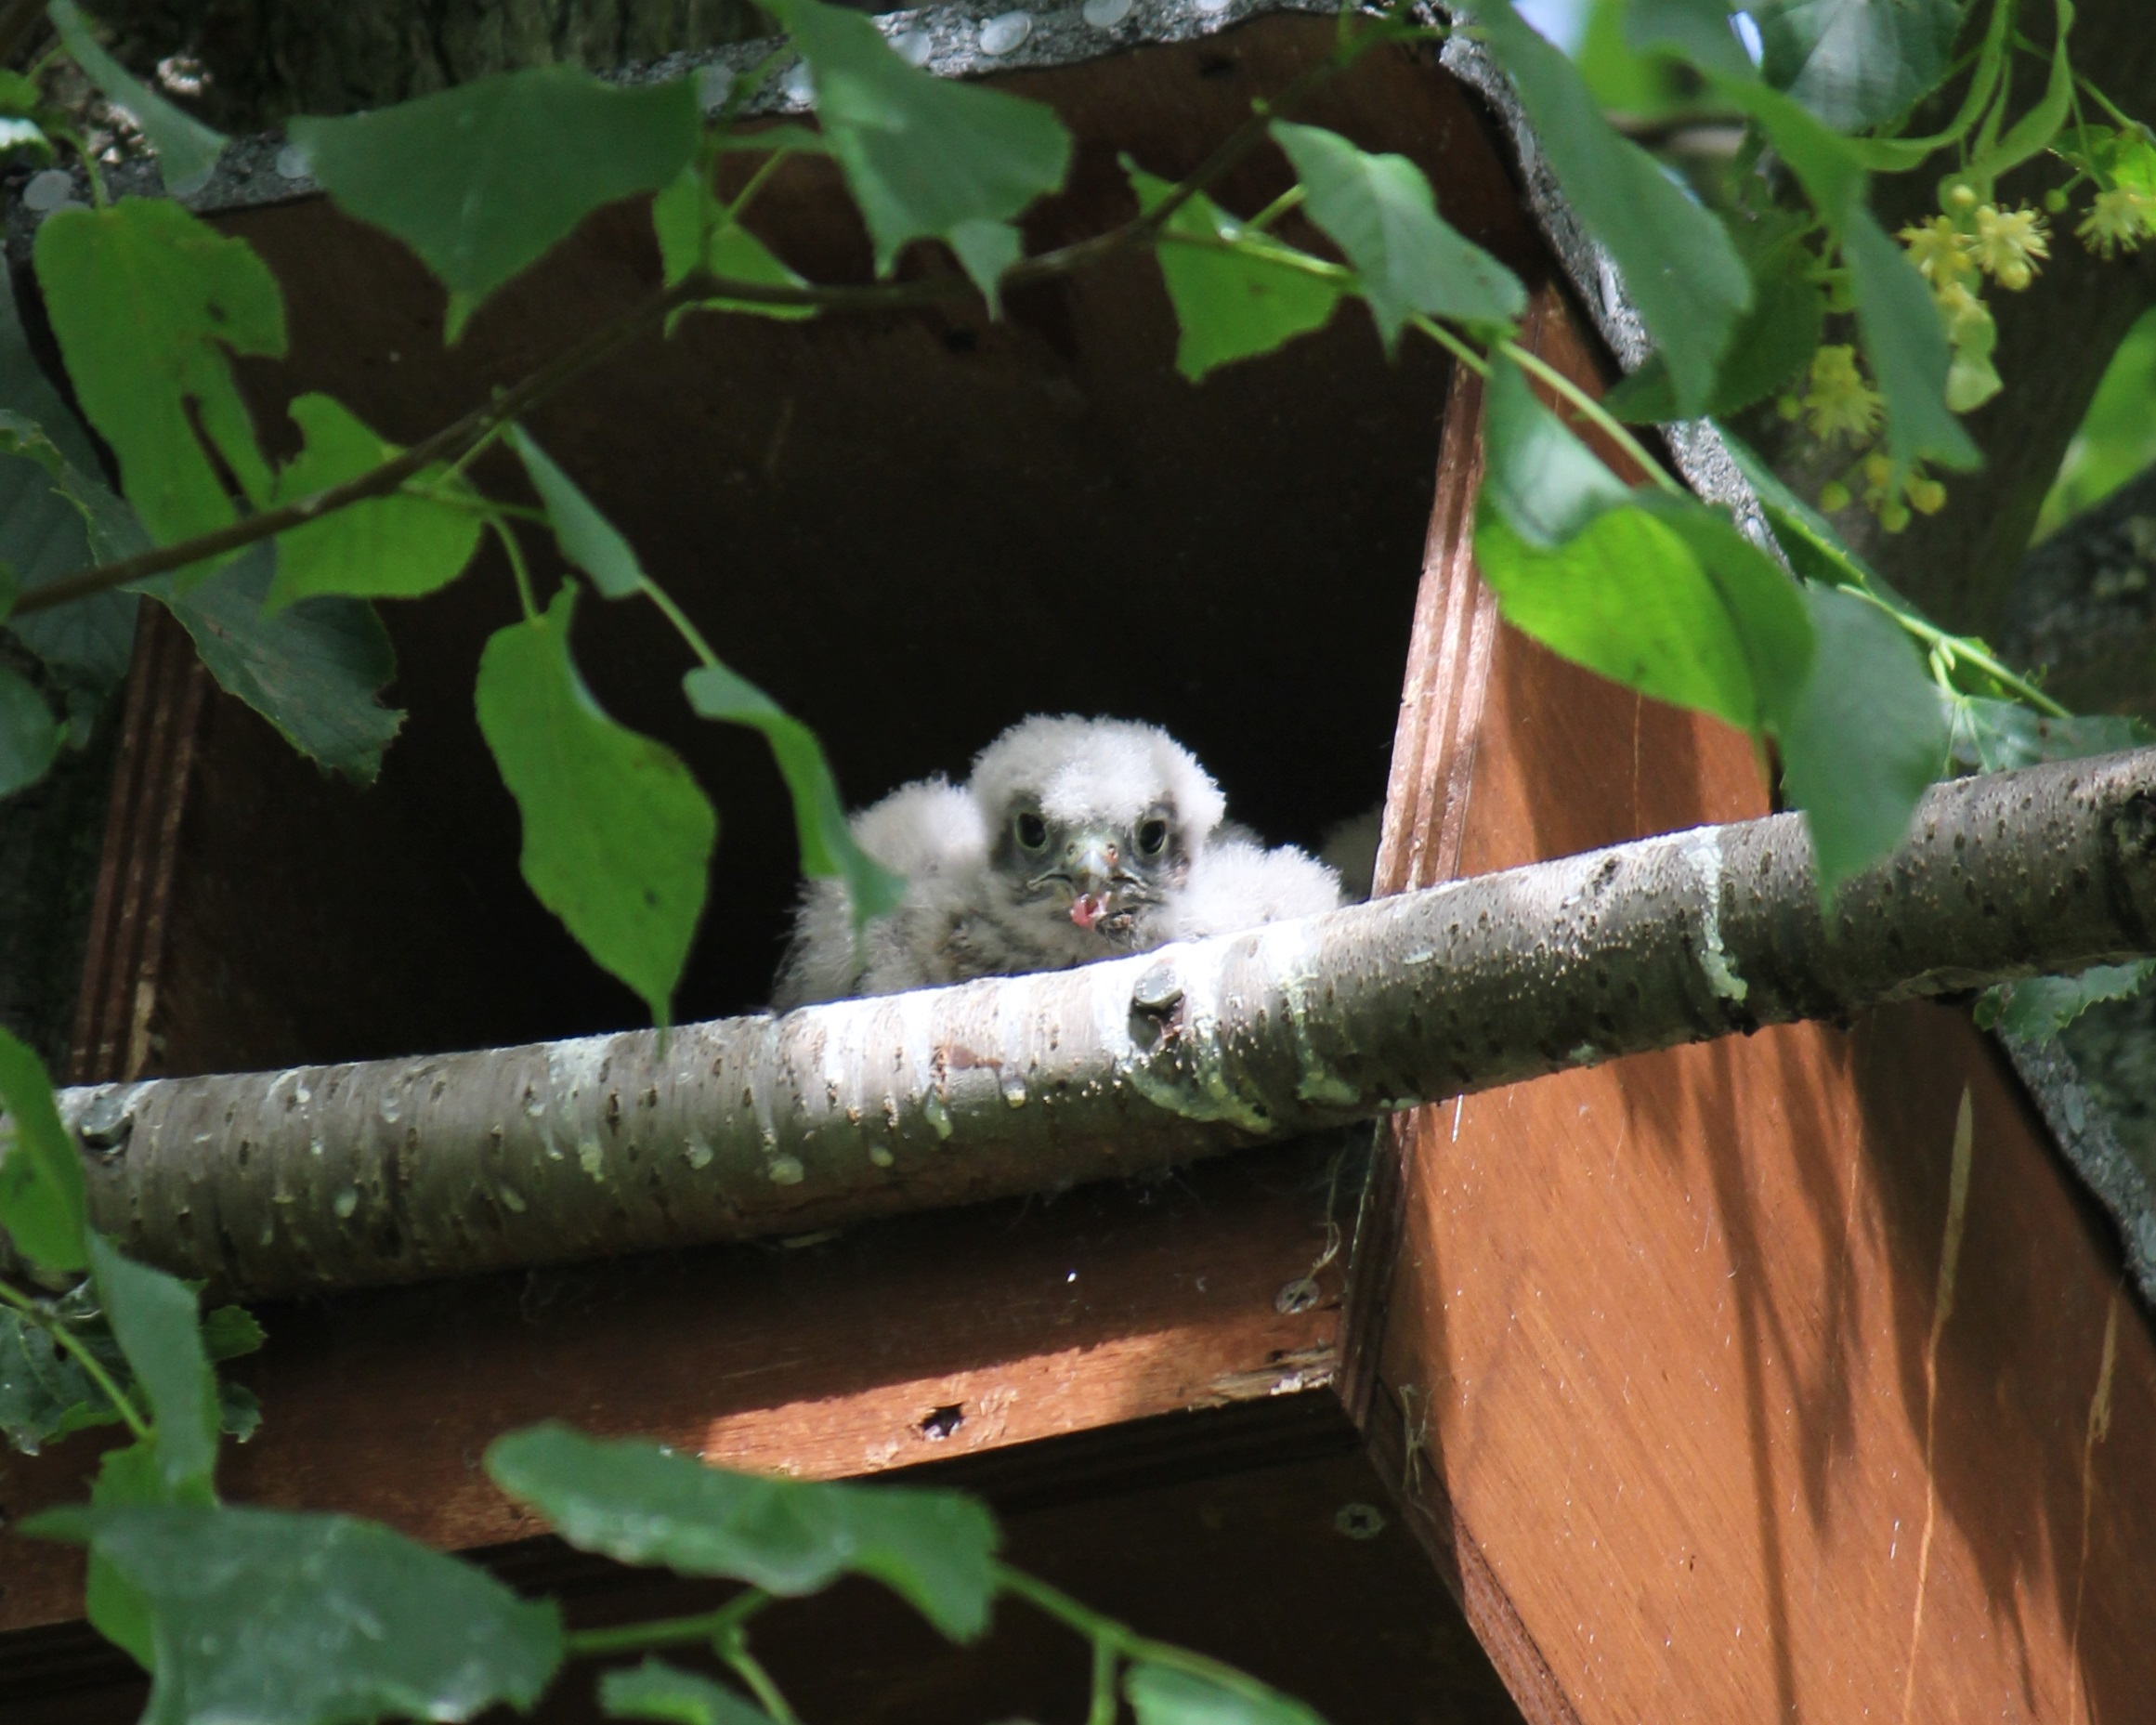 Kestrel chick at CEH Wallingford site 2014